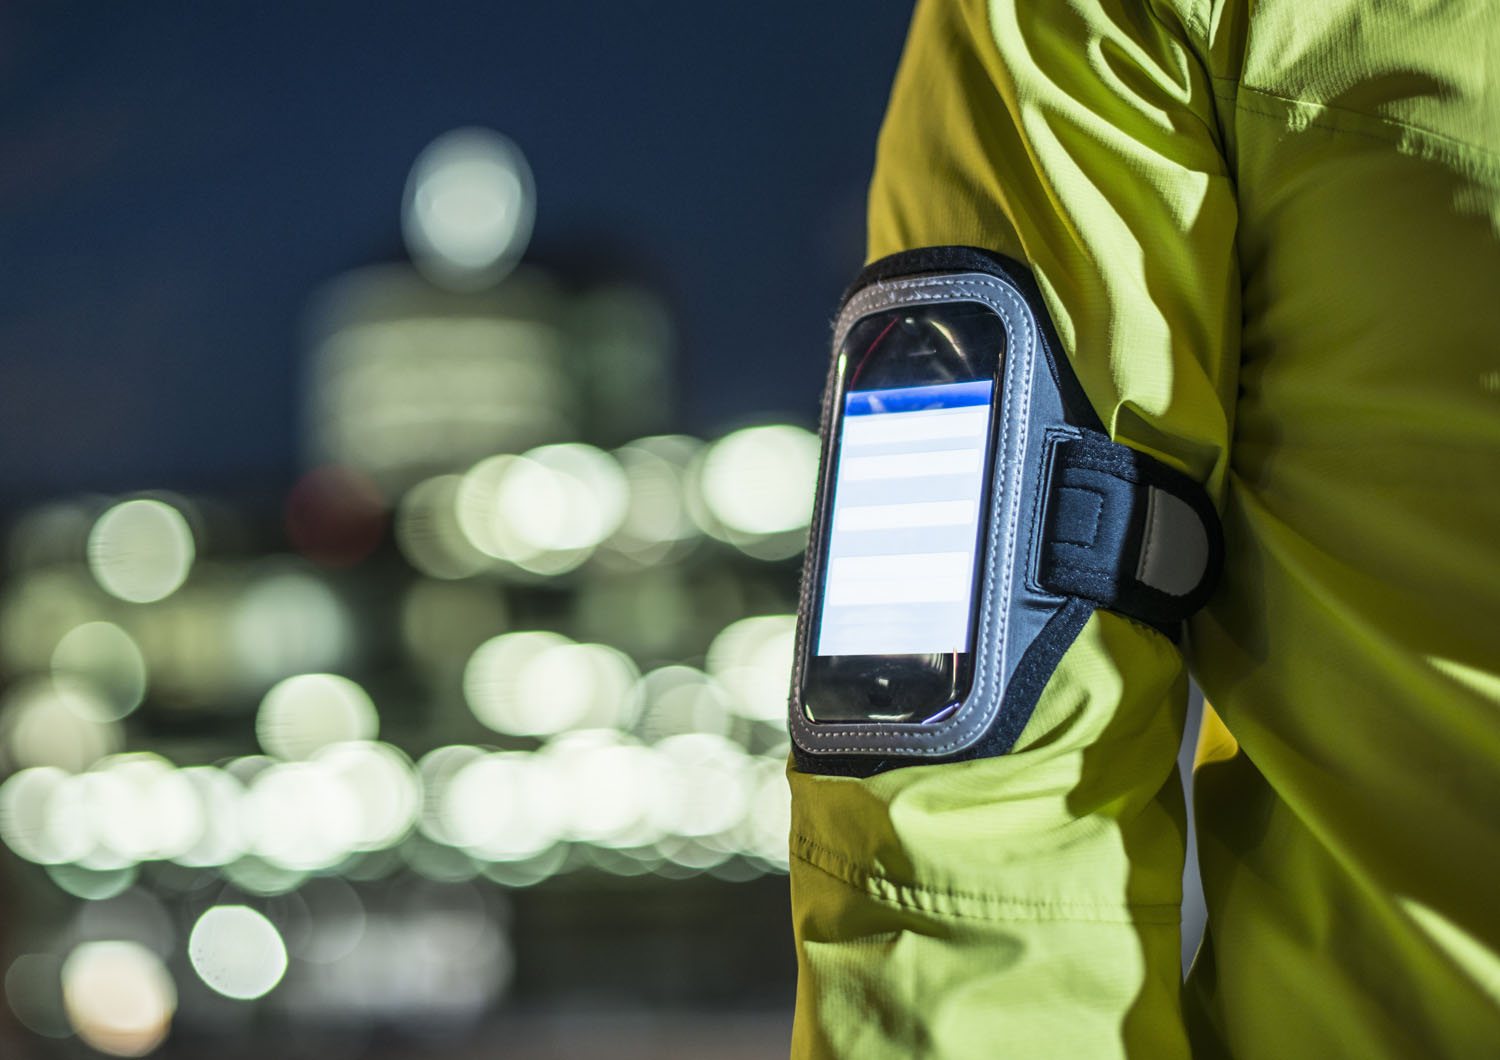 A runner wears a smartphone on his arm.